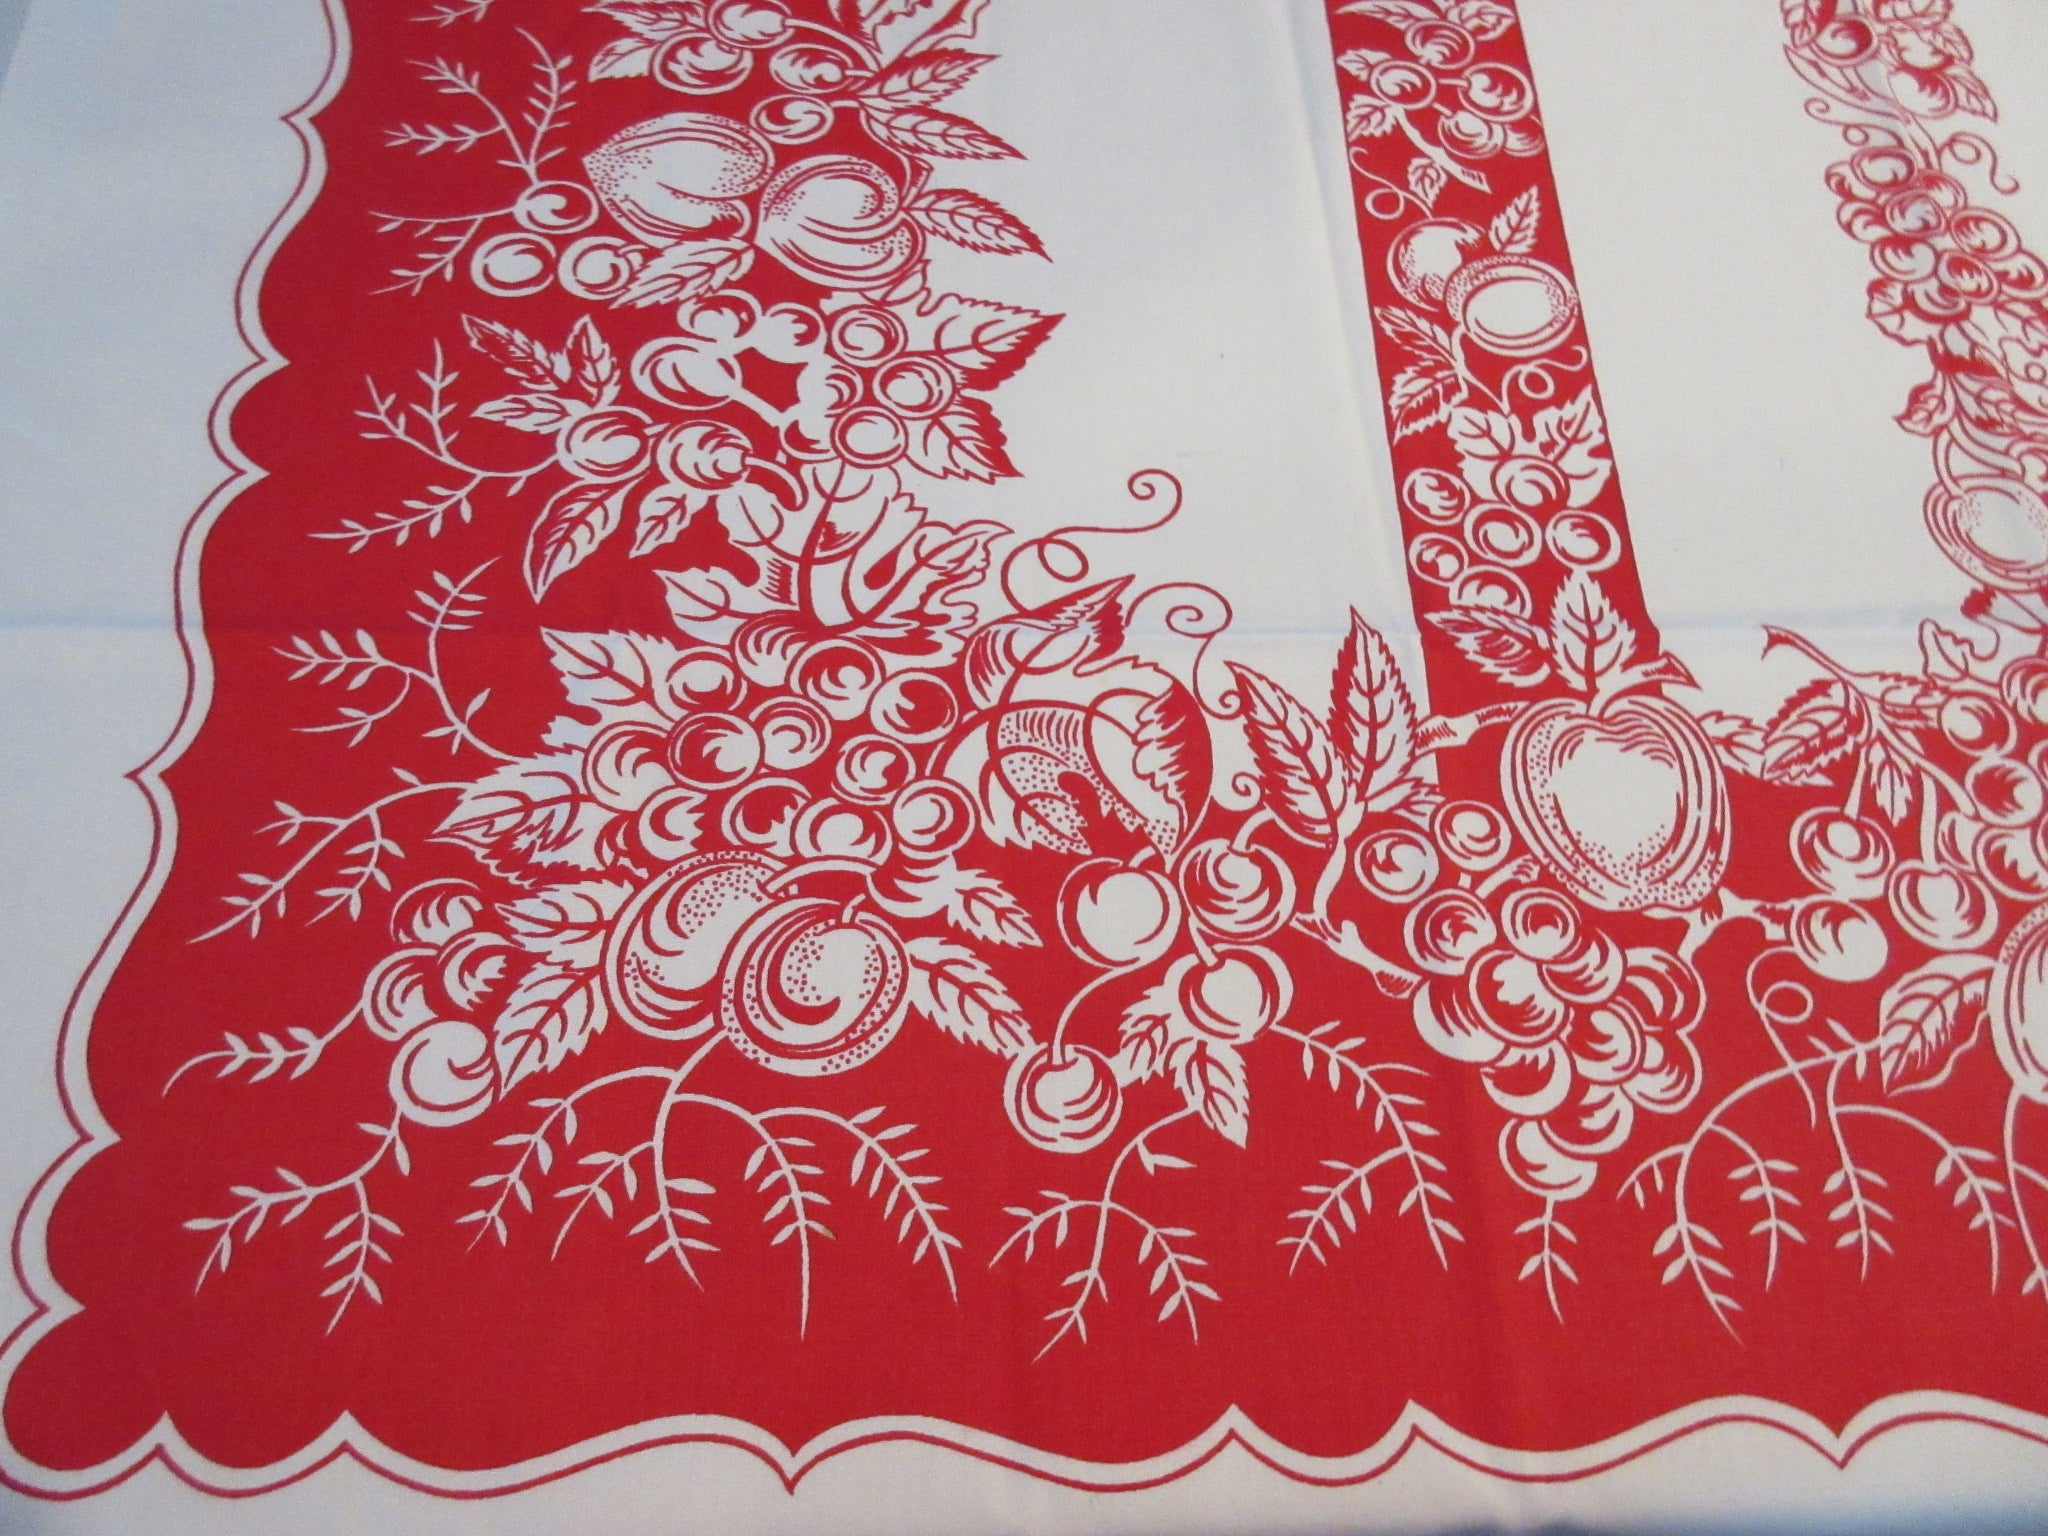 Red Reverse Printed Vegetable Fruit Stripes Vintage Printed Tablecloth (52 X 49)